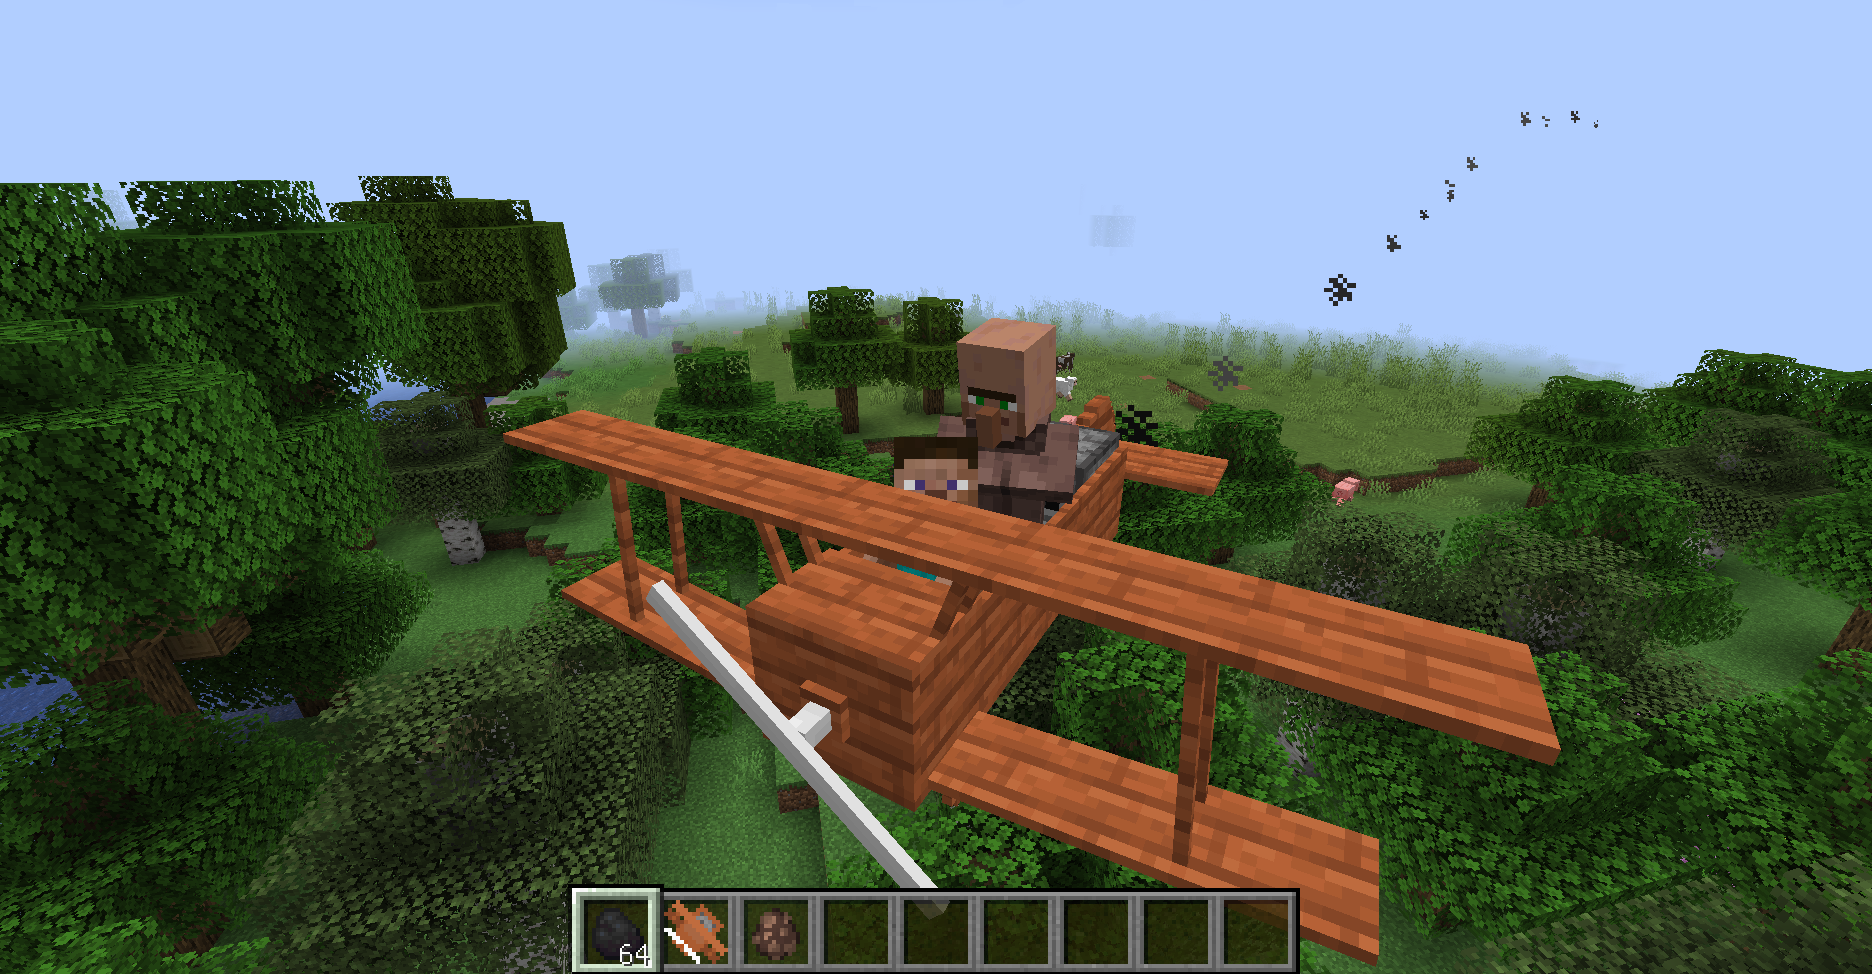 Simple Planes Mod for Minecraft 1.16.1/1.15.2